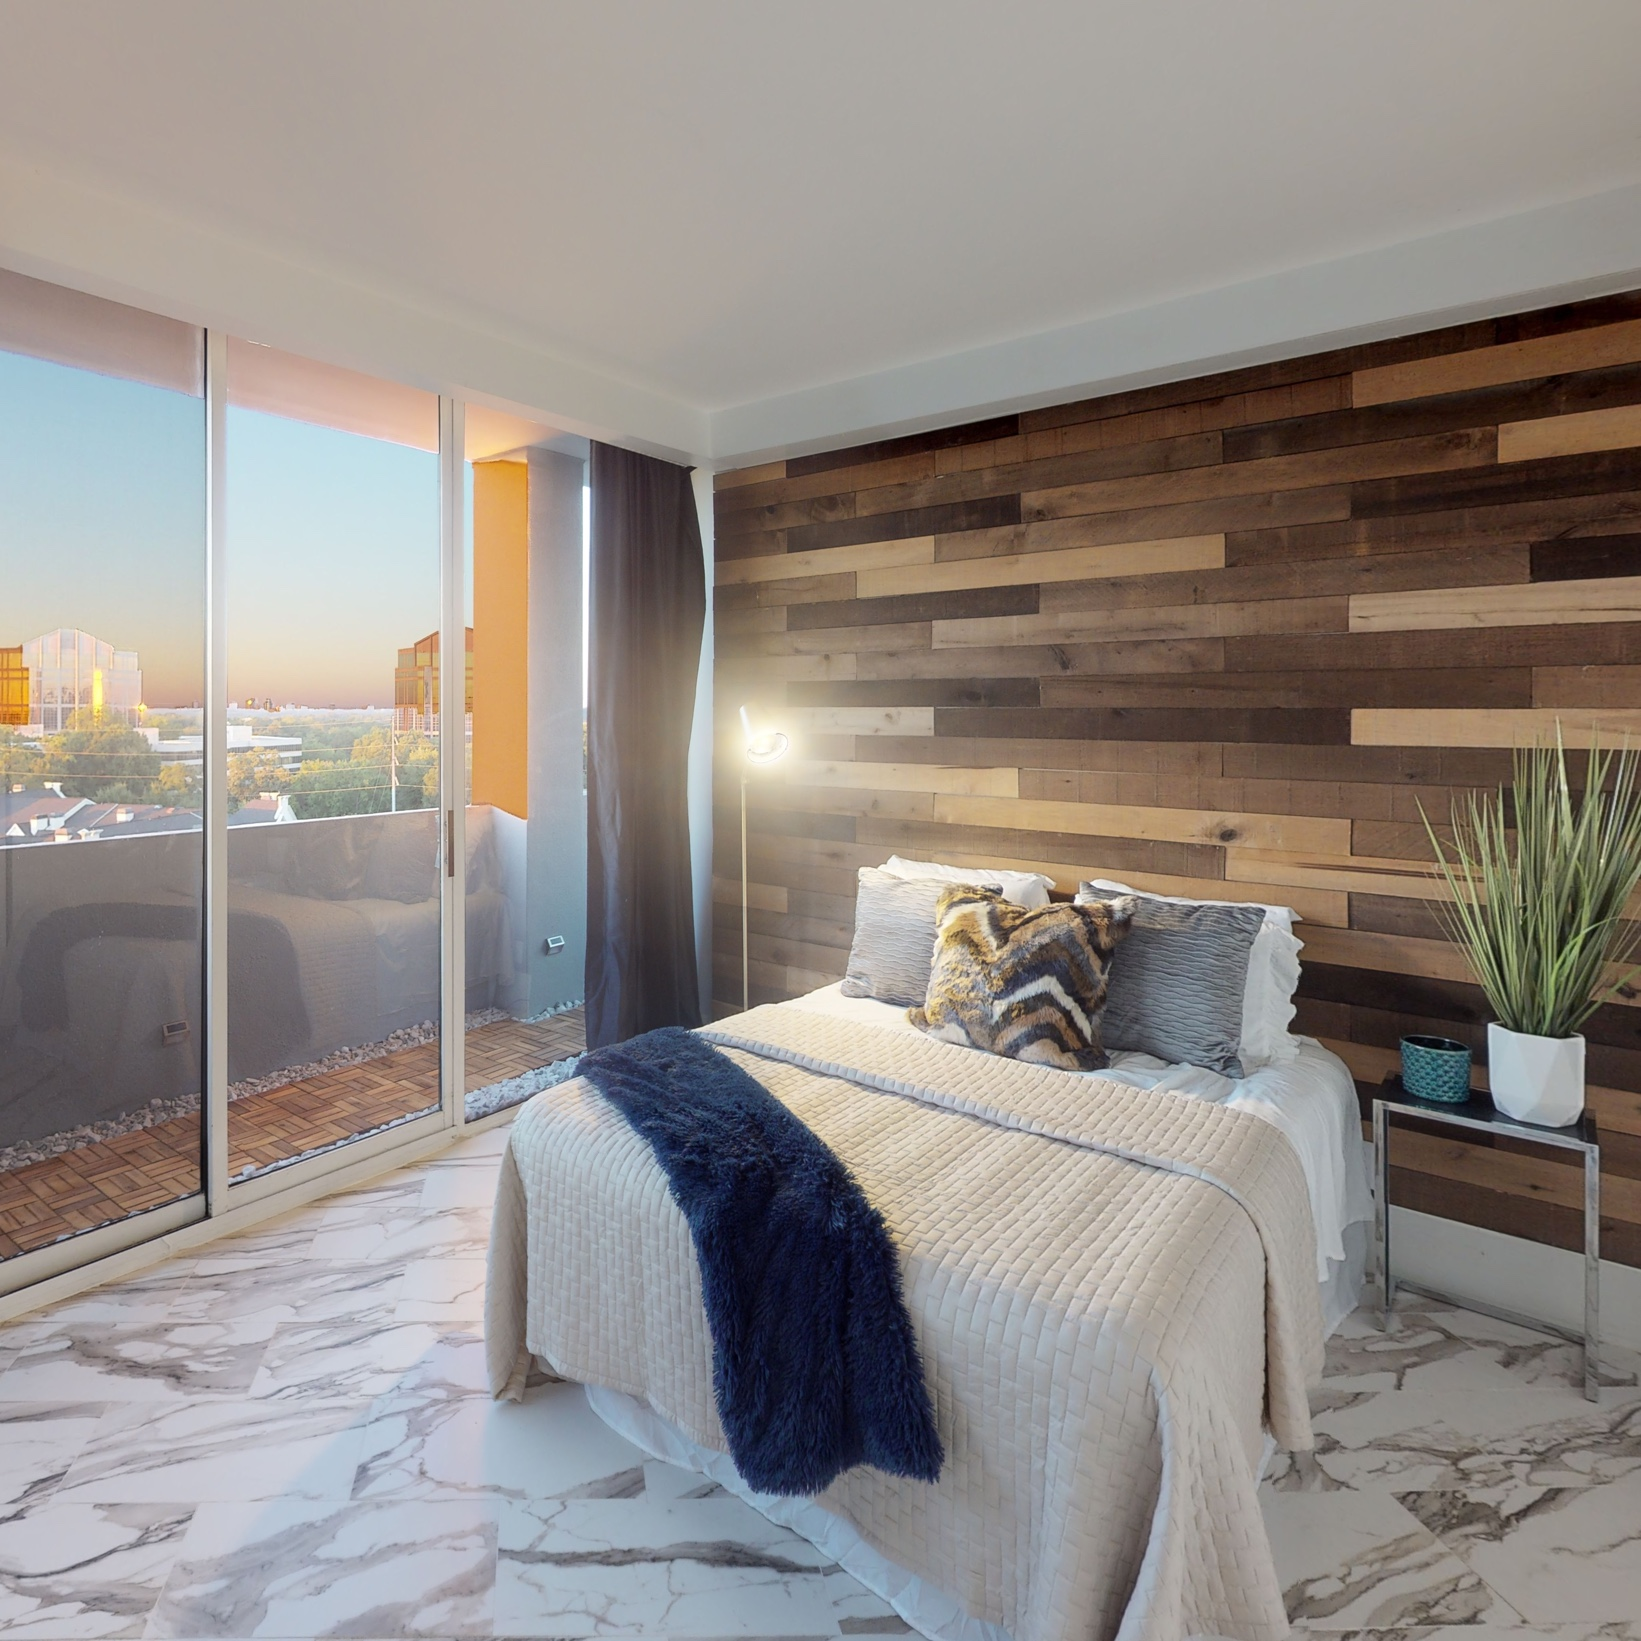 Sunny bedroom of a high-rise condo